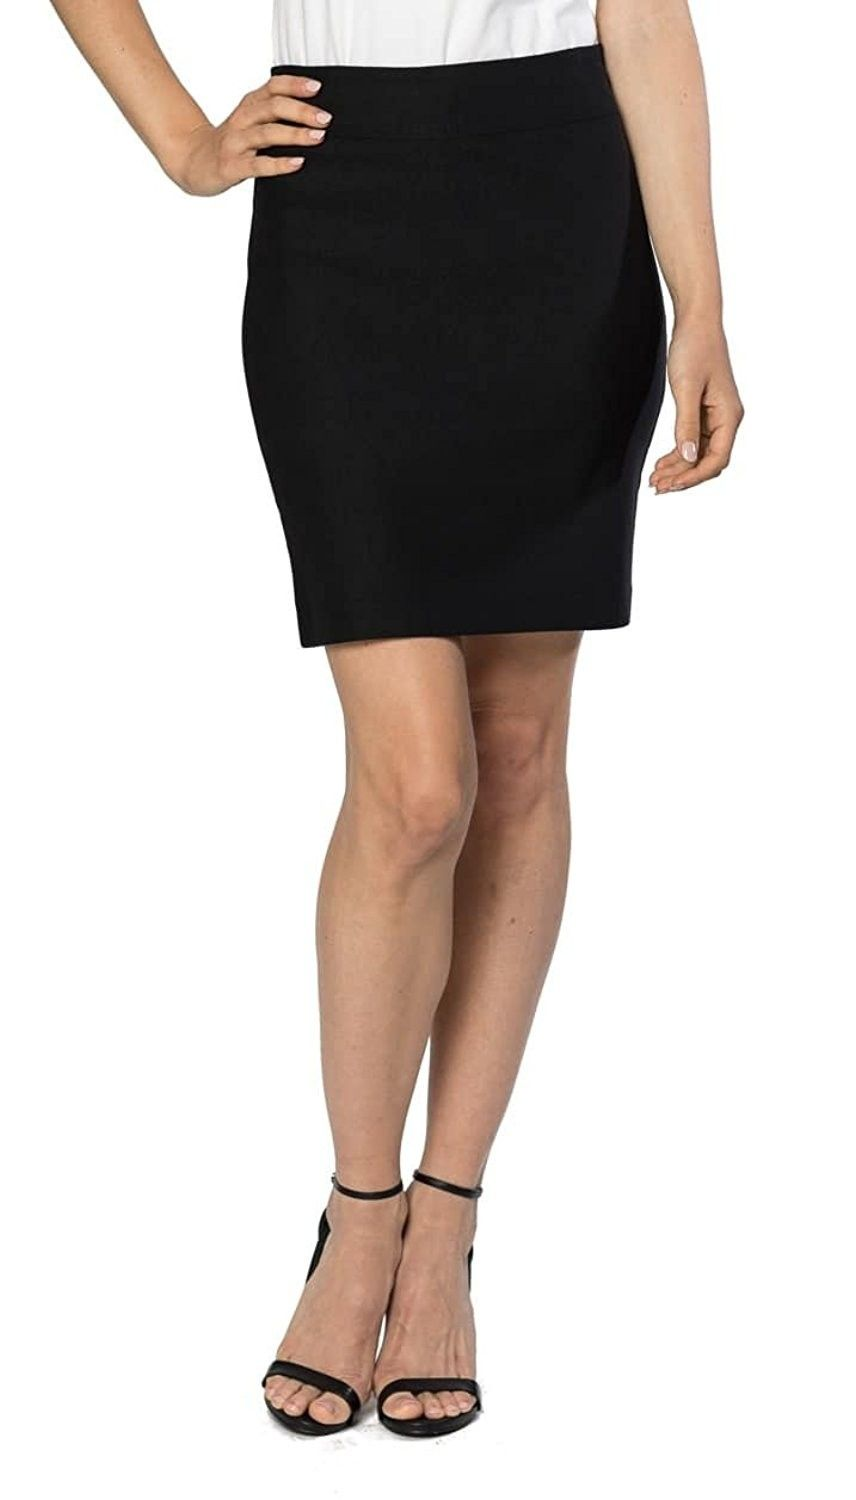 4d2cb5f2af Women's Clothing, Skirts,Womens Stretchable Mini Pencil Skirt - Above The  Knee 19